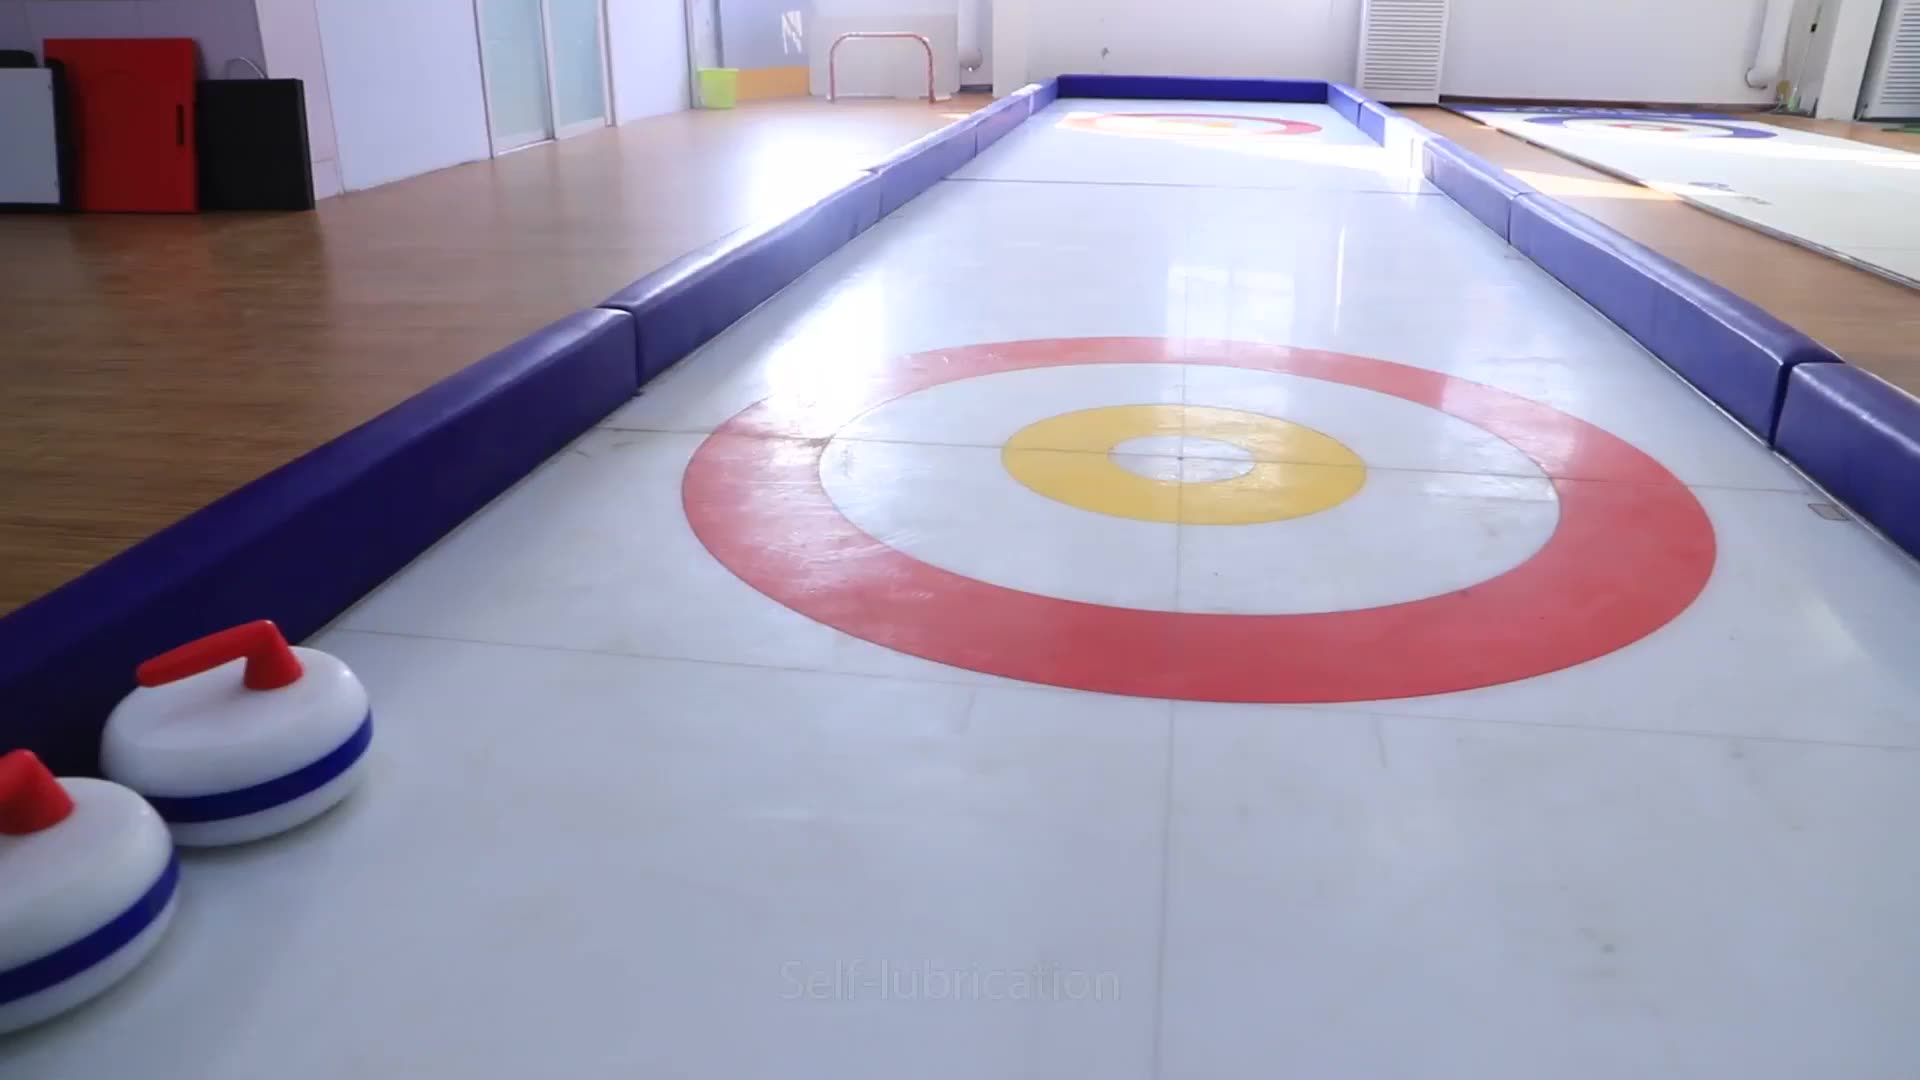 Portable flooring panels and artificial synthetic ice rink boards uhmwpe self lubricating board